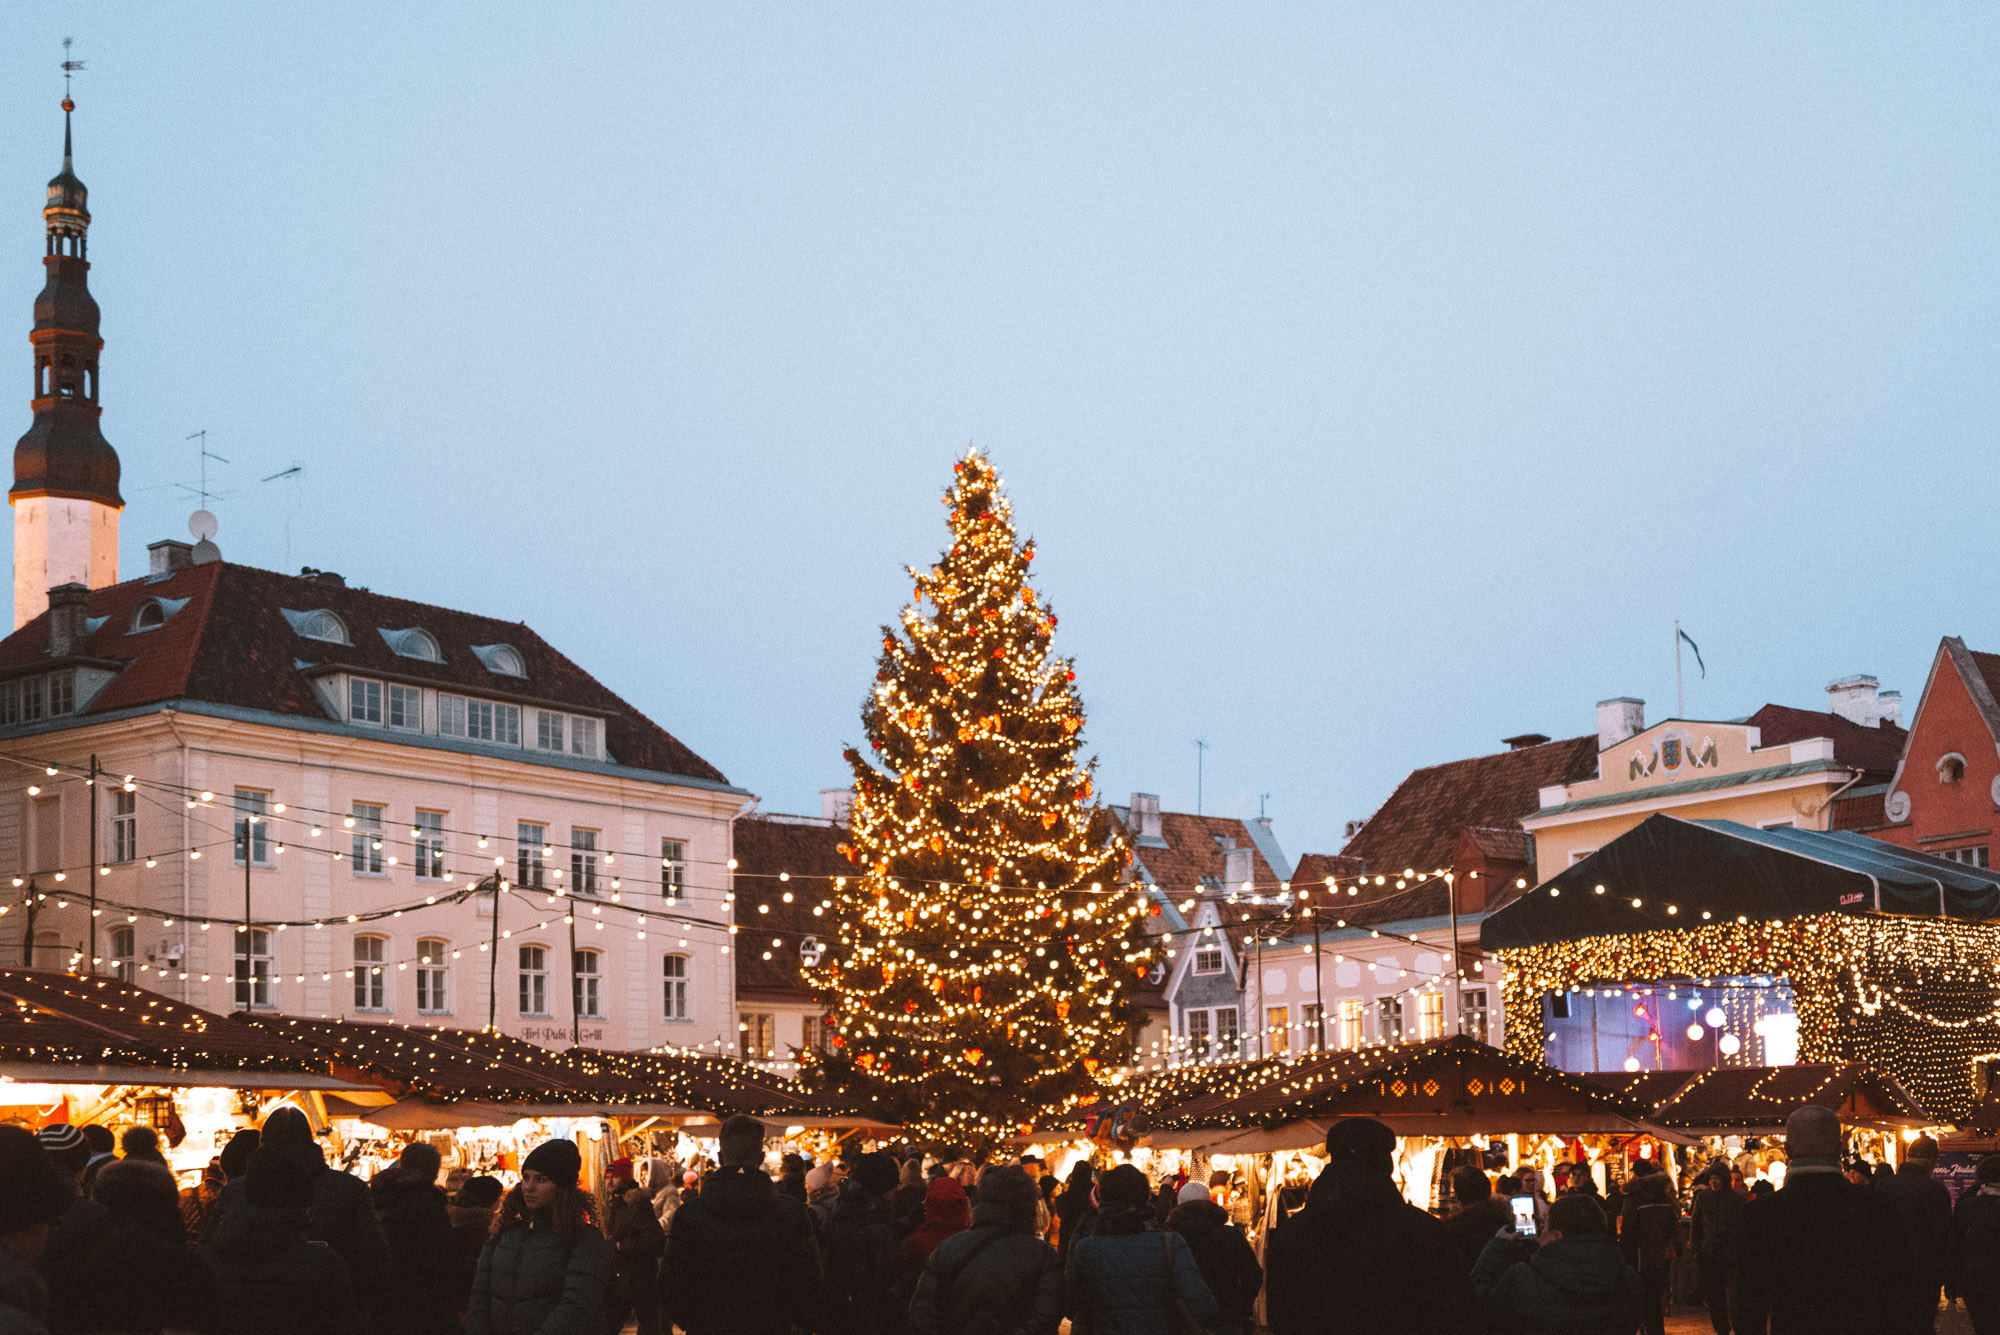 Tallinn Estonia Christmas Market in Winter via @finduslost